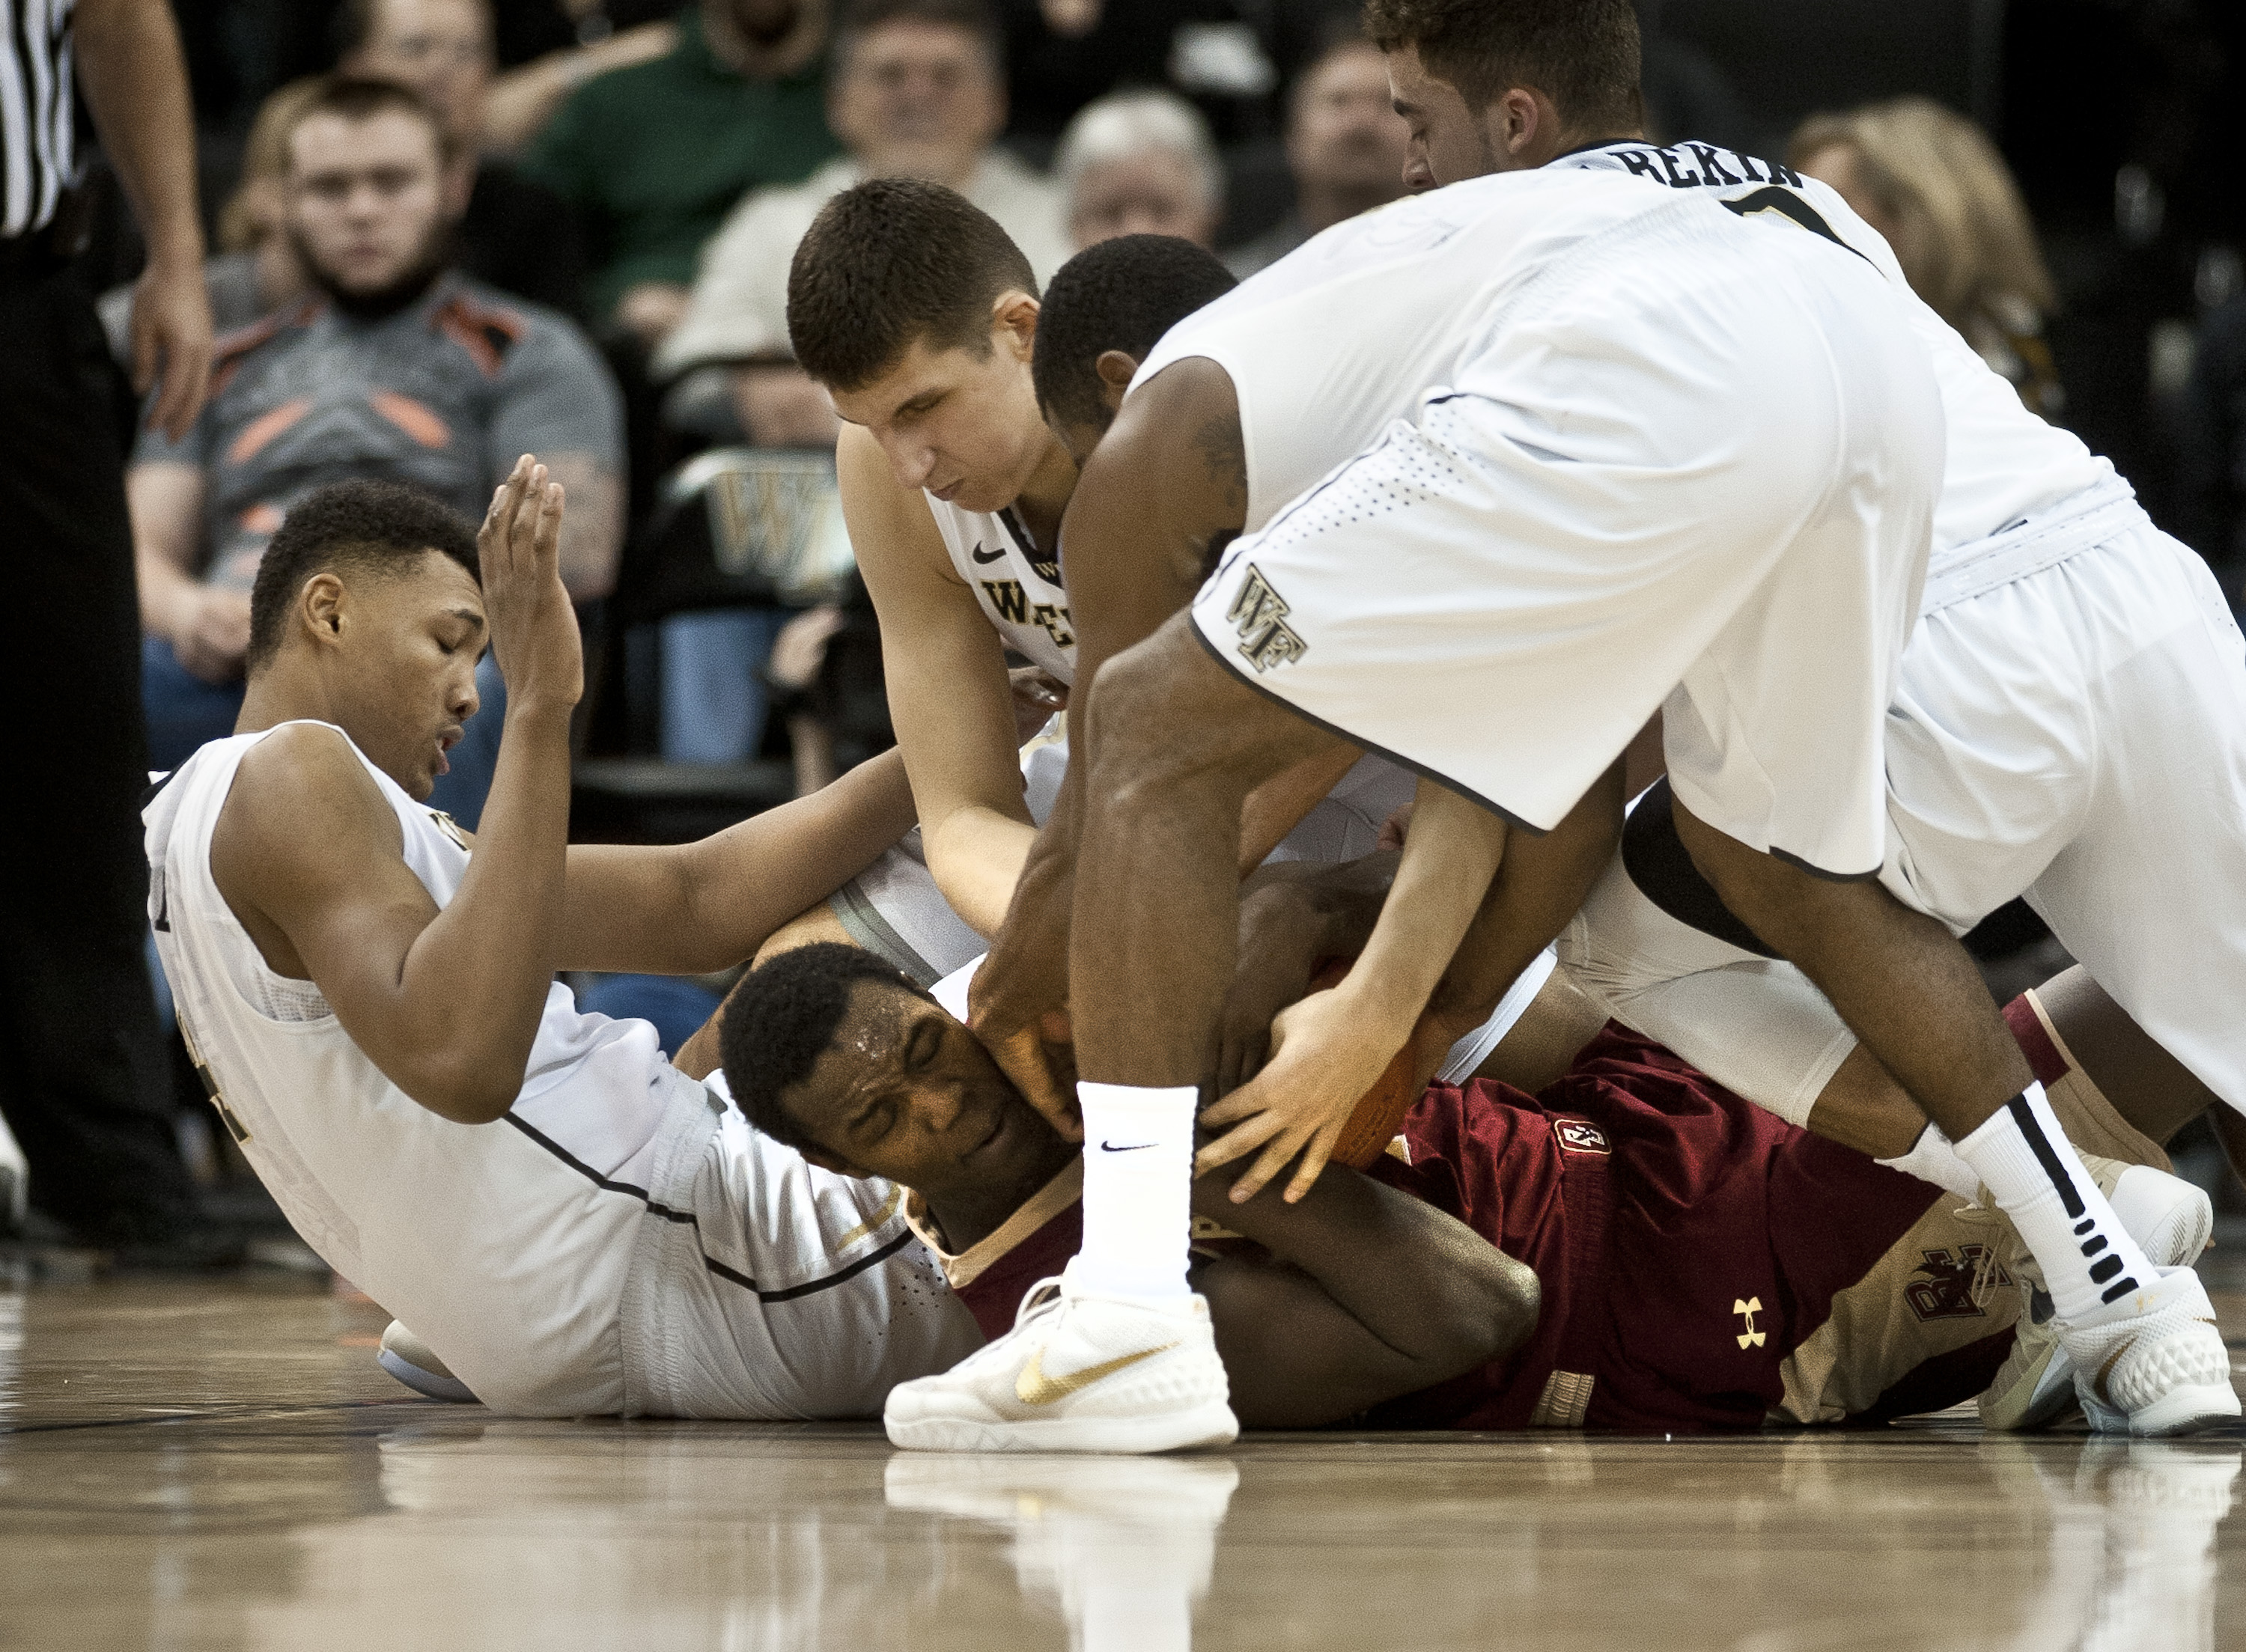 Wake Forest's from left Doral Moore, Konstantinos Mitoglou and Codi Miller-McIntyre battle for the ball with Boston College's Idy Diallo  during an NCAA college basketball game Sunday Feb. 21, 2016, in Winston-Salem, N.C. (Walt Unks/The Winston-Salem Jour